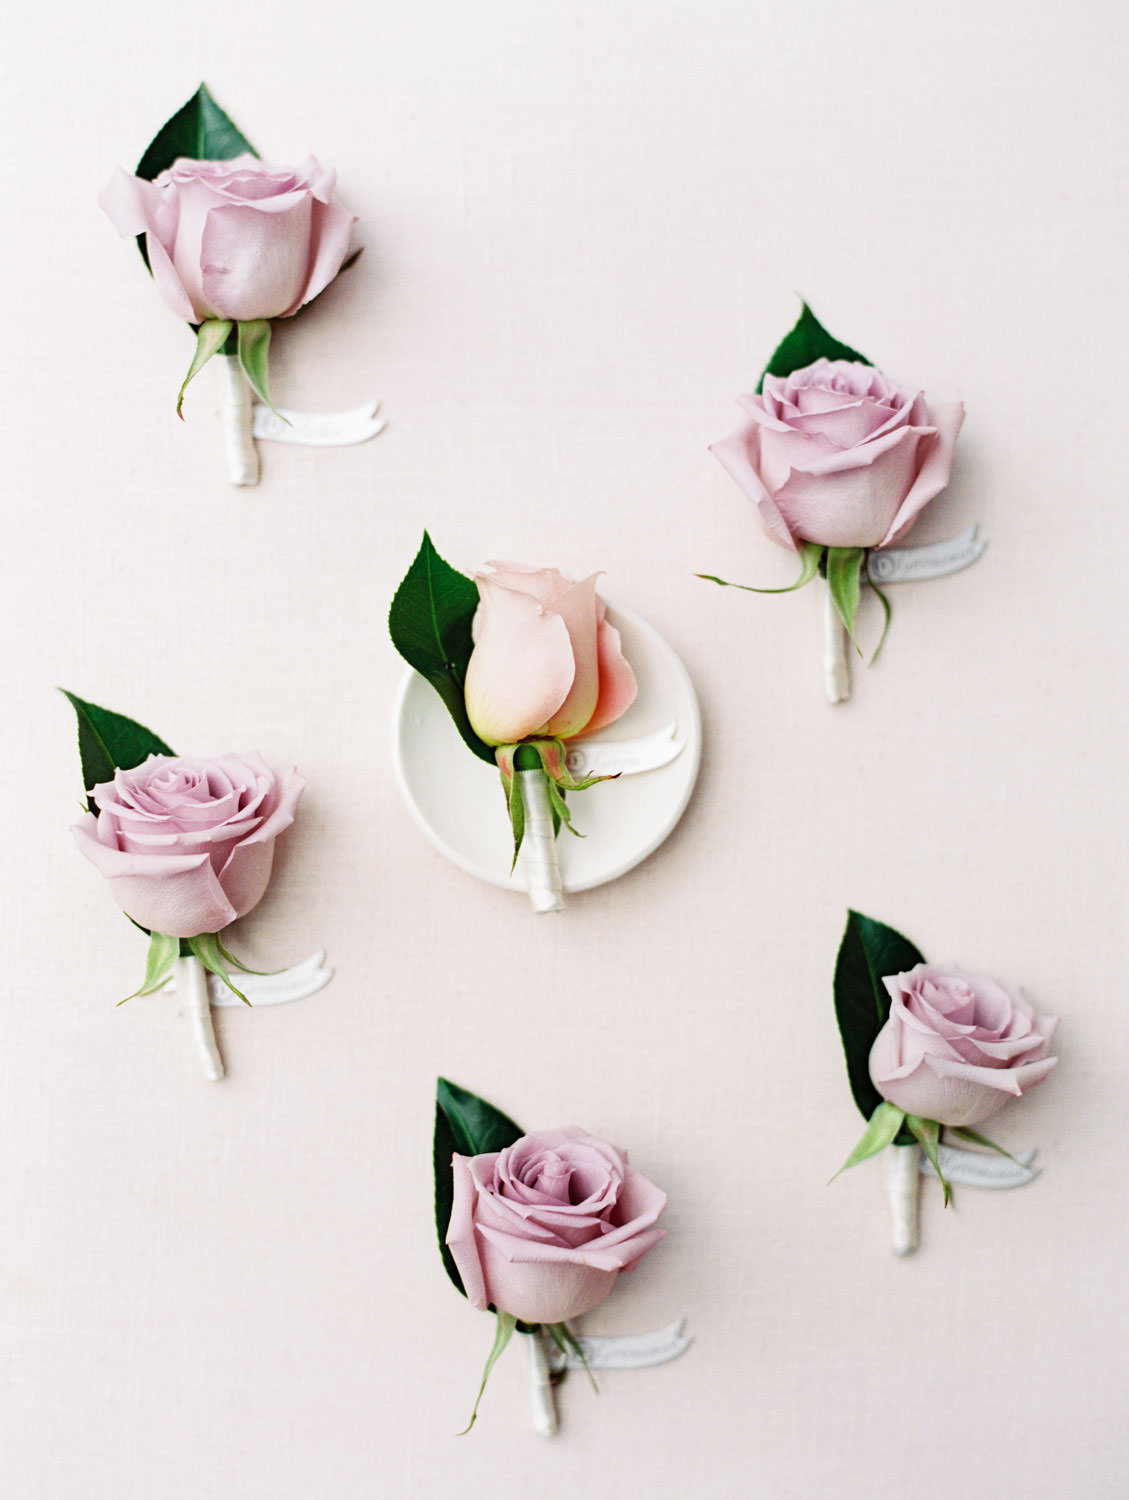 Blush peach rose boutonniere for the groom and lavender rose boutonnieres for groomsmen, film photography by Cavin Elizabeth Photography